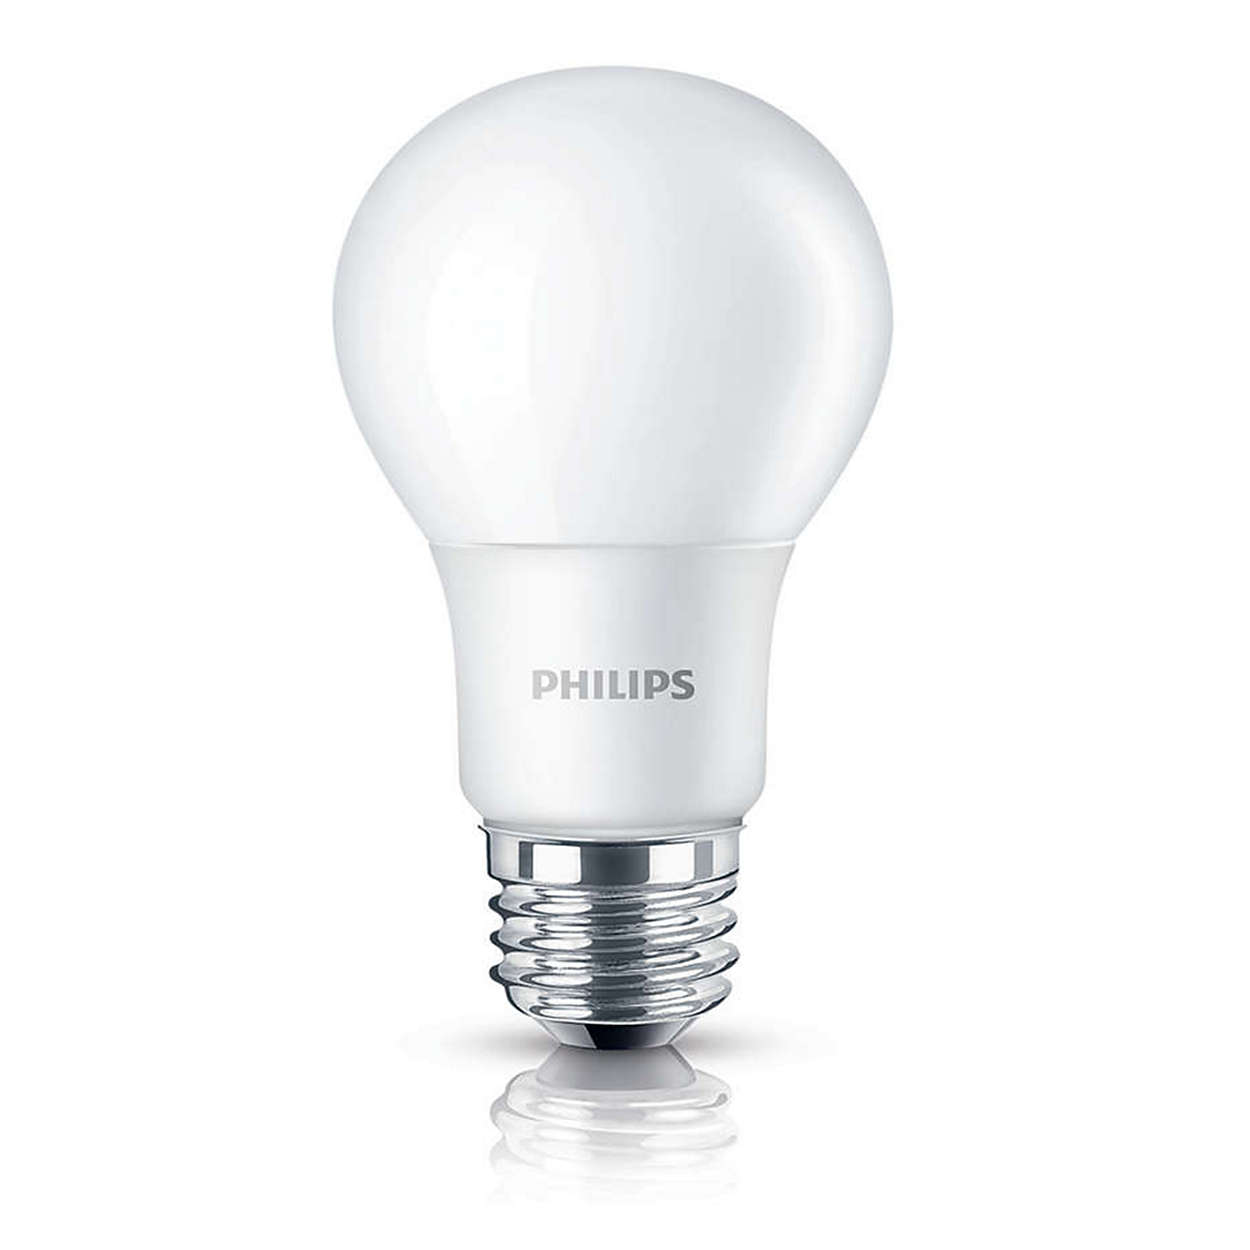 Simply beautiful, affordable LED light